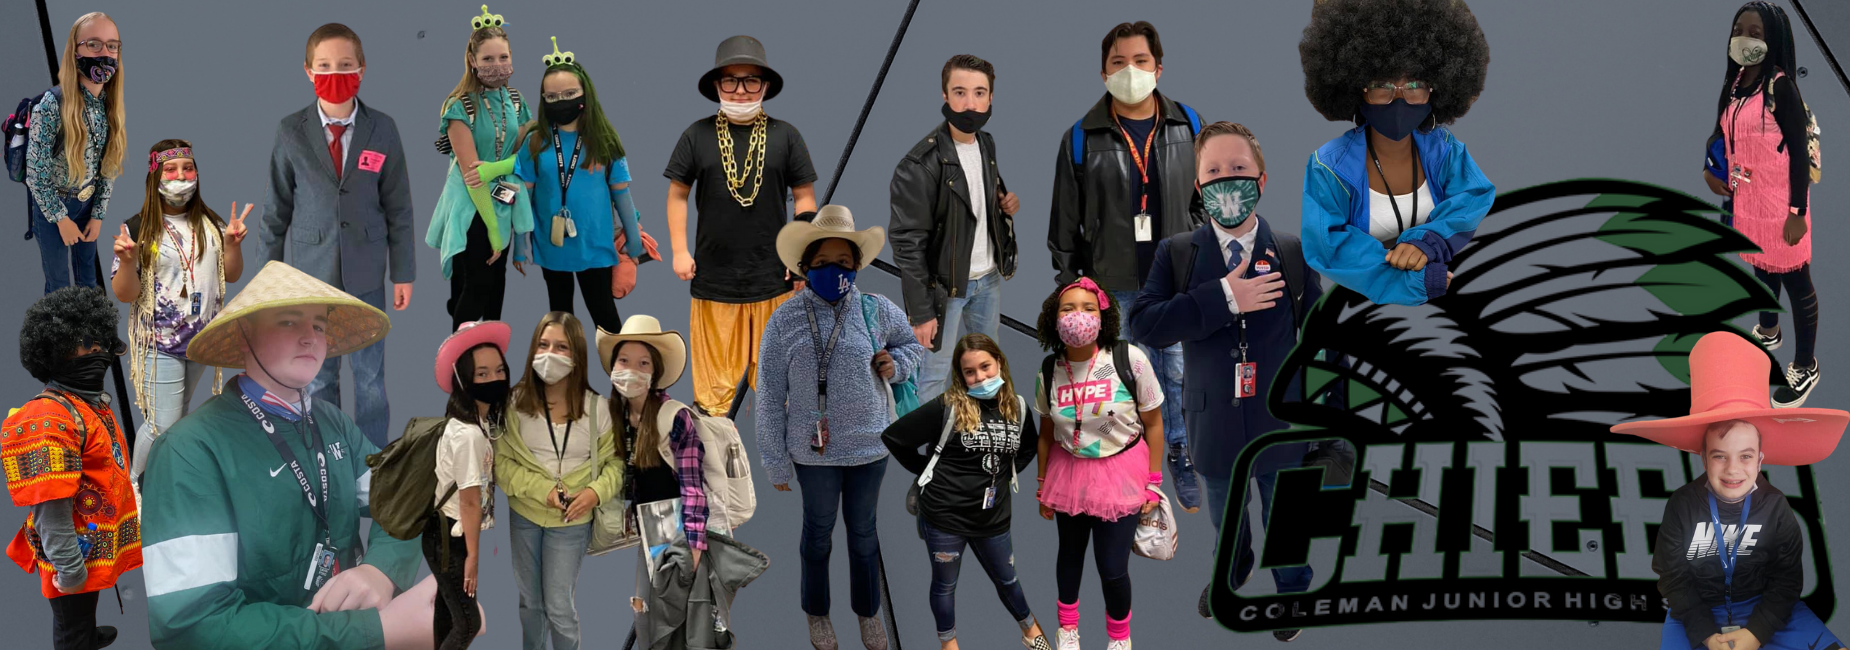 collage of students dressed up for spirit week